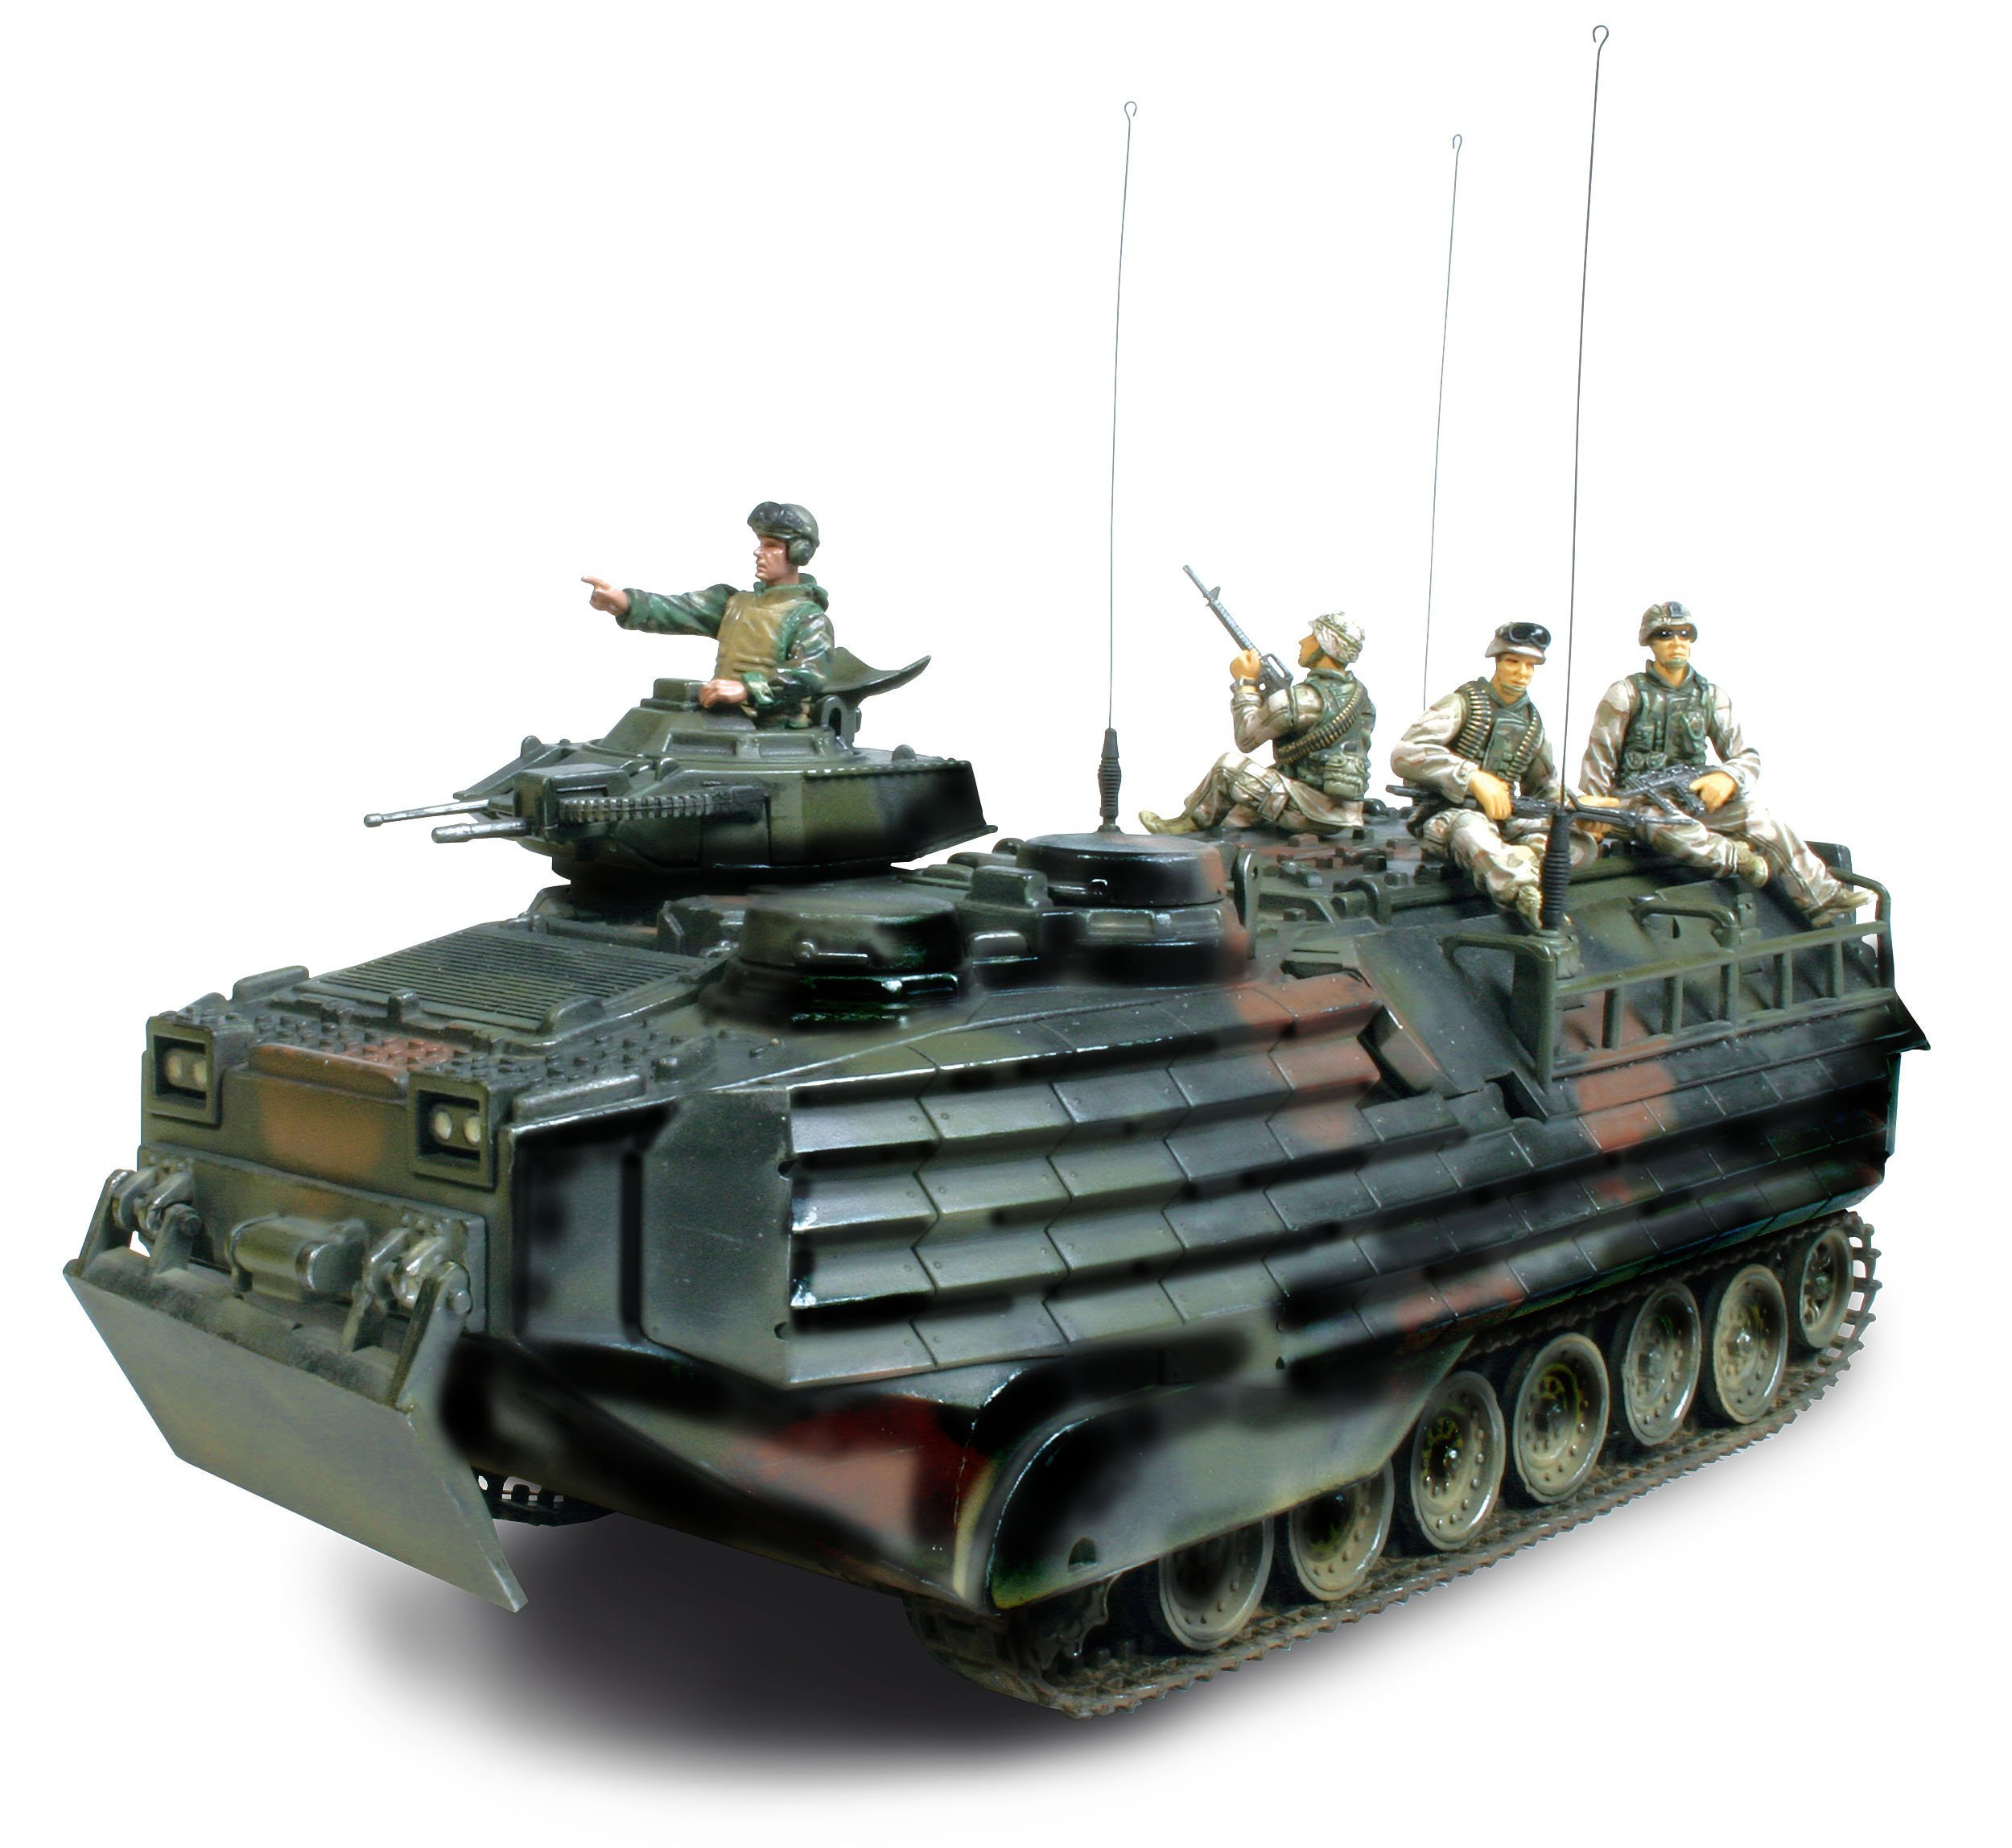 Unimax Forces of Valor 1:32 Scale U.S. AAVP7A1